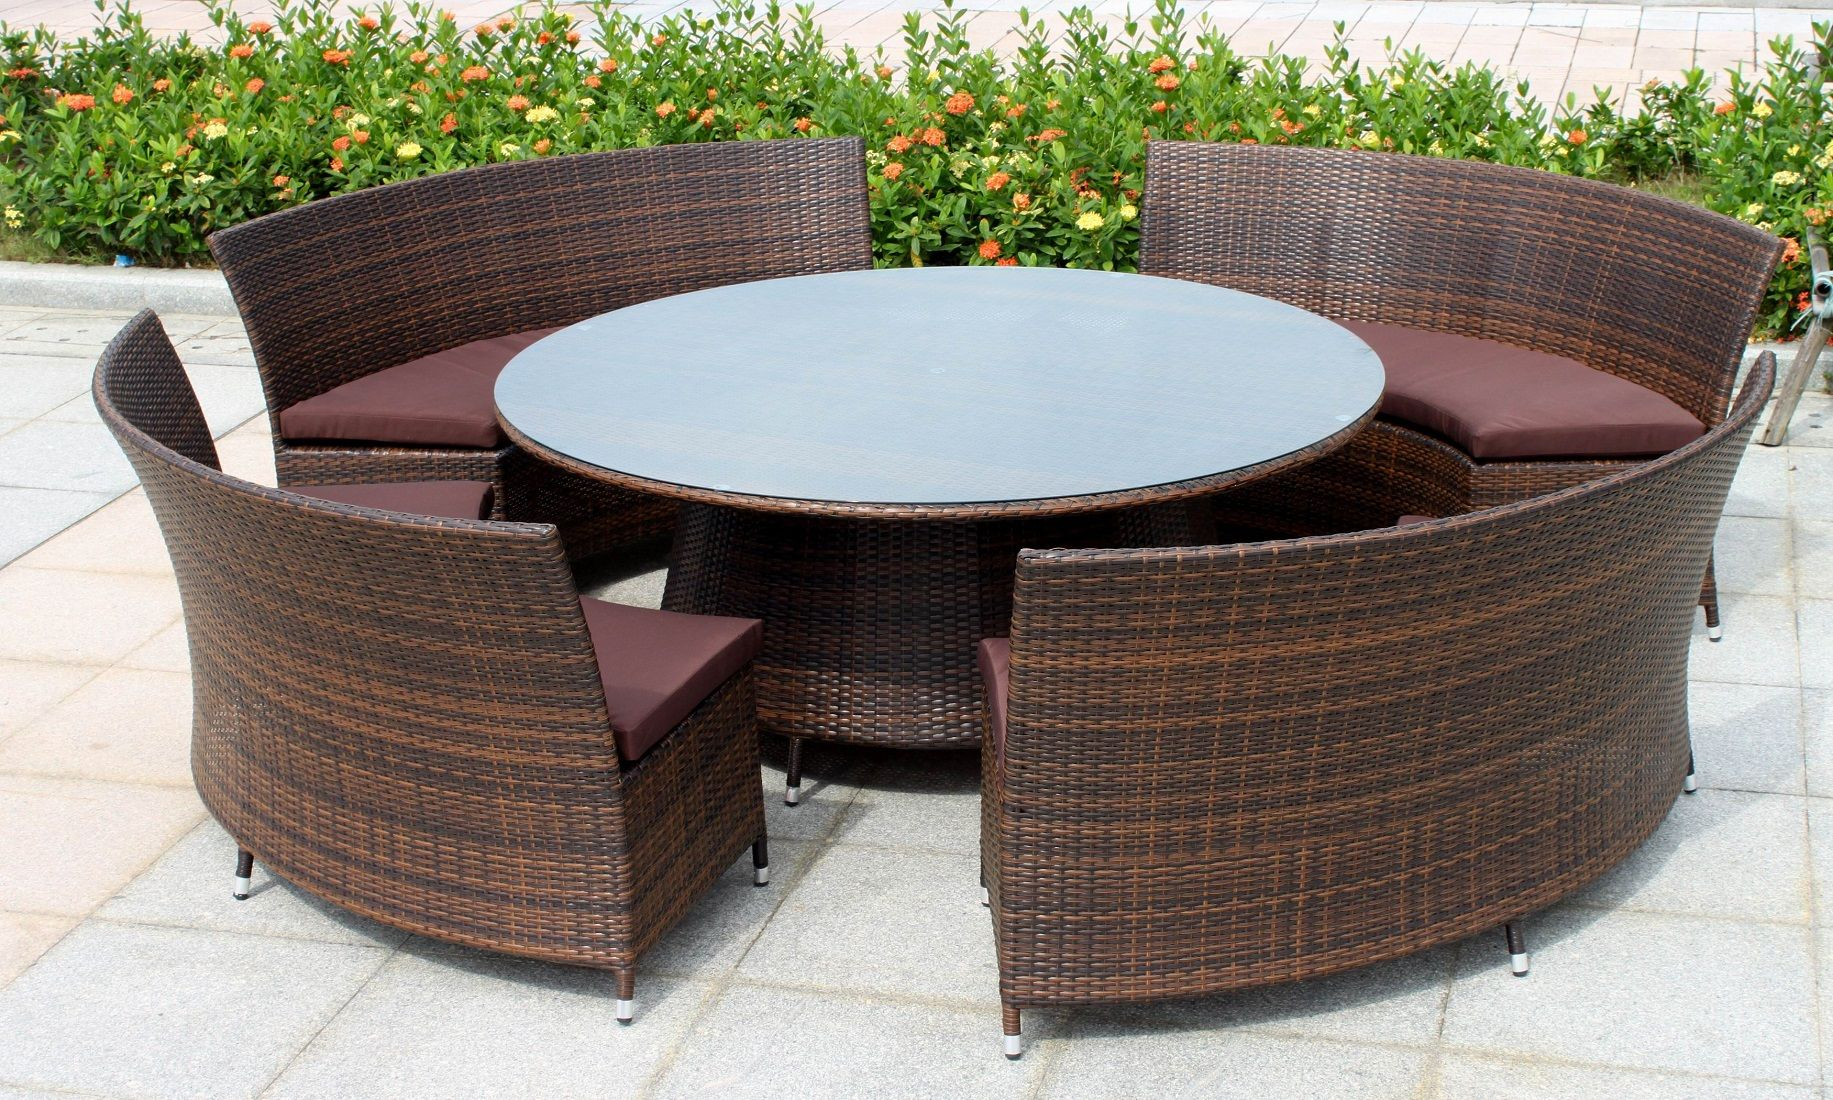 Furnitures   Fantastic Big Round Wicker Patio Furniture With Brown     Furnitures   Fantastic Big Round Wicker Patio Furniture With Brown Cushions  Above Stone Floor Around Flowers